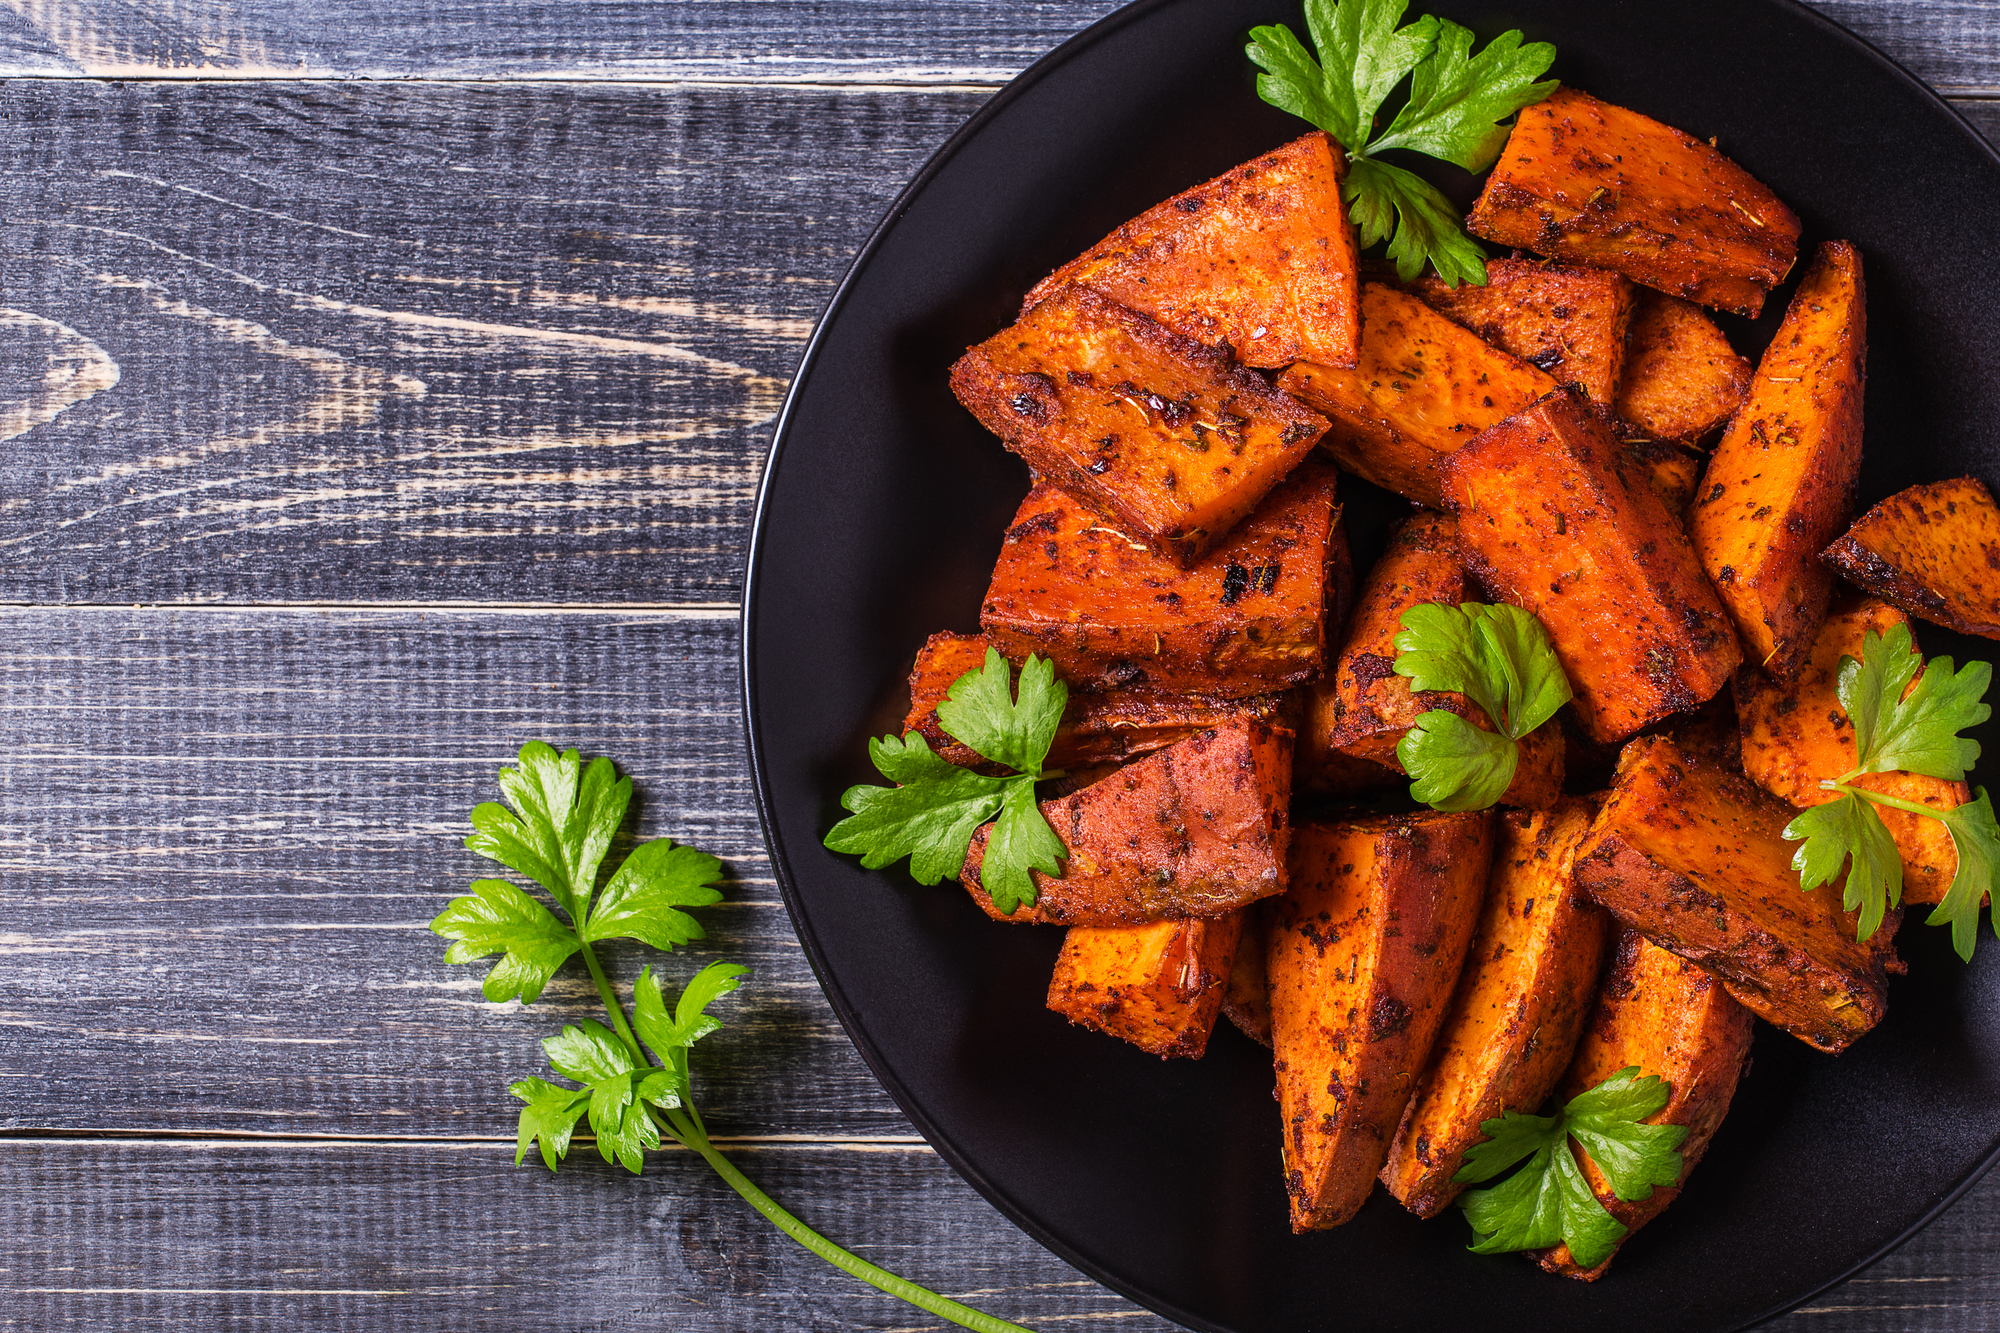 Homemade Cooked Sweet Potato with spices and herbs